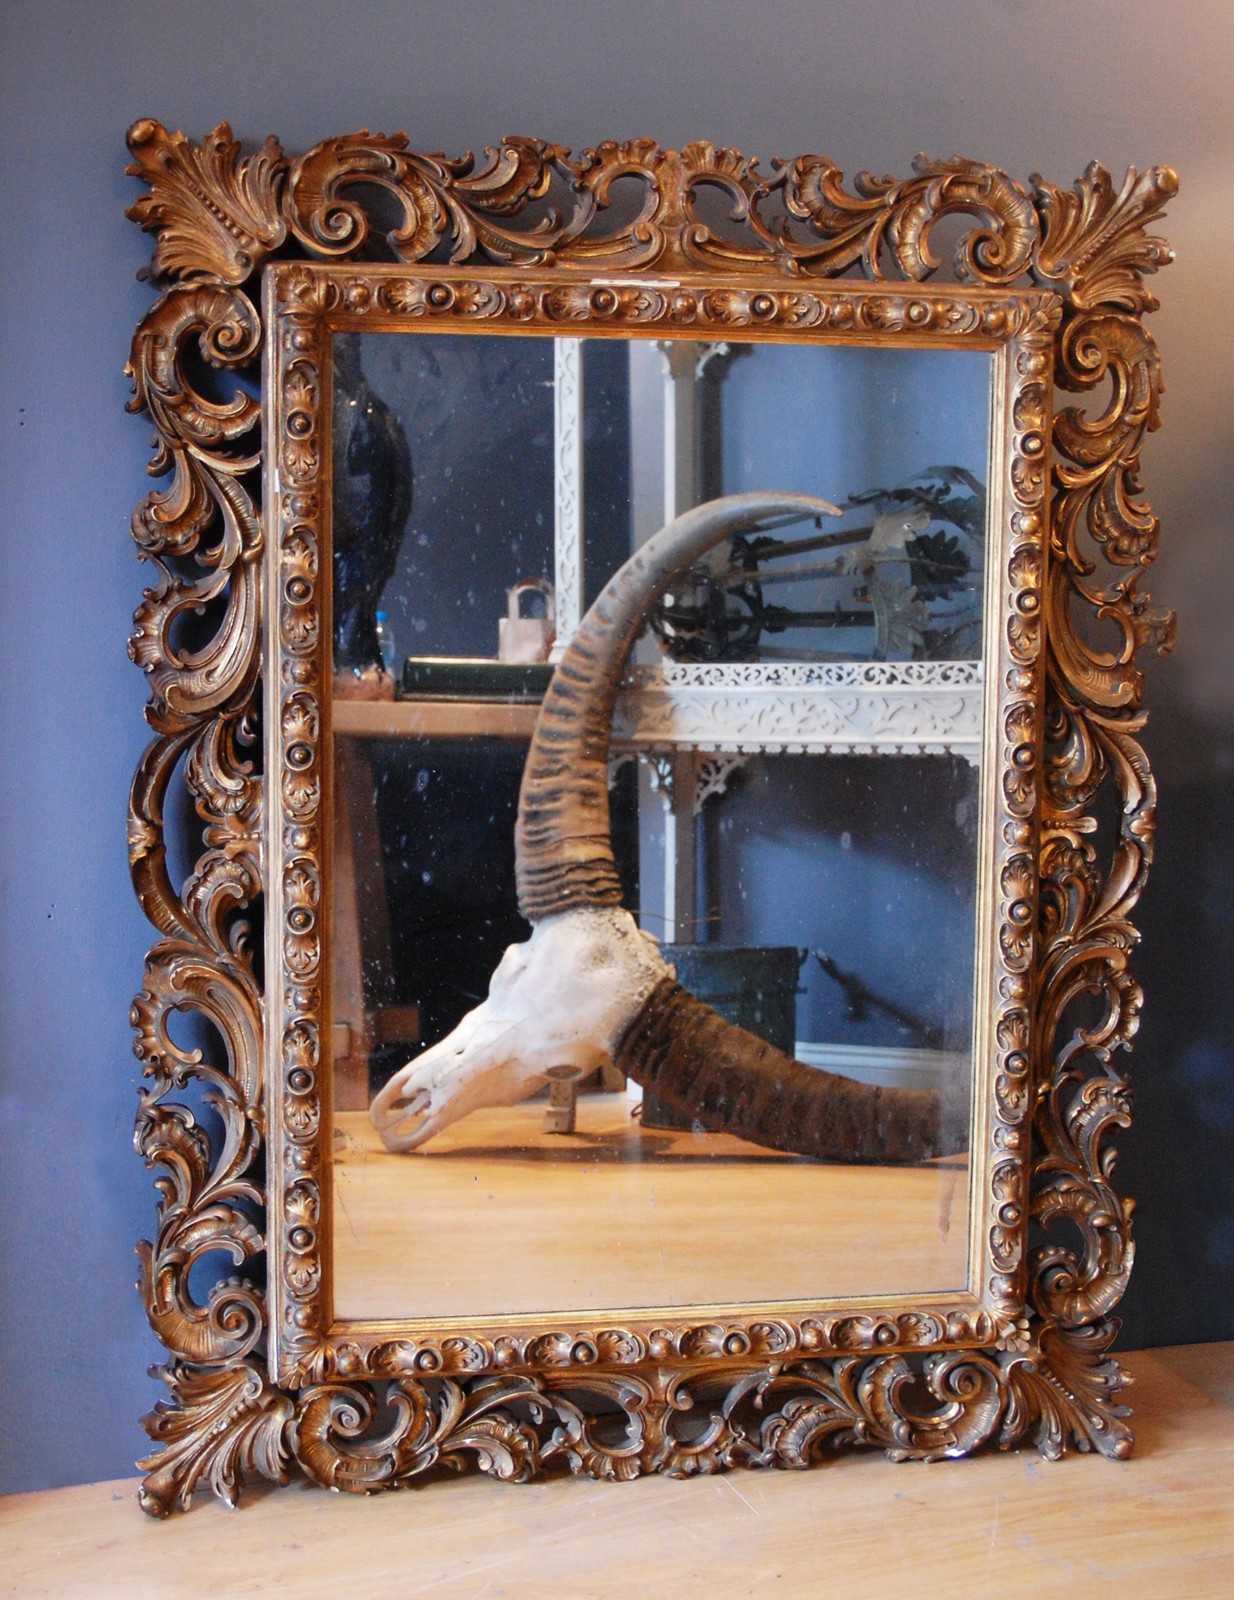 Rococo style english gilded frame with mirror decorative for Rococo style frame